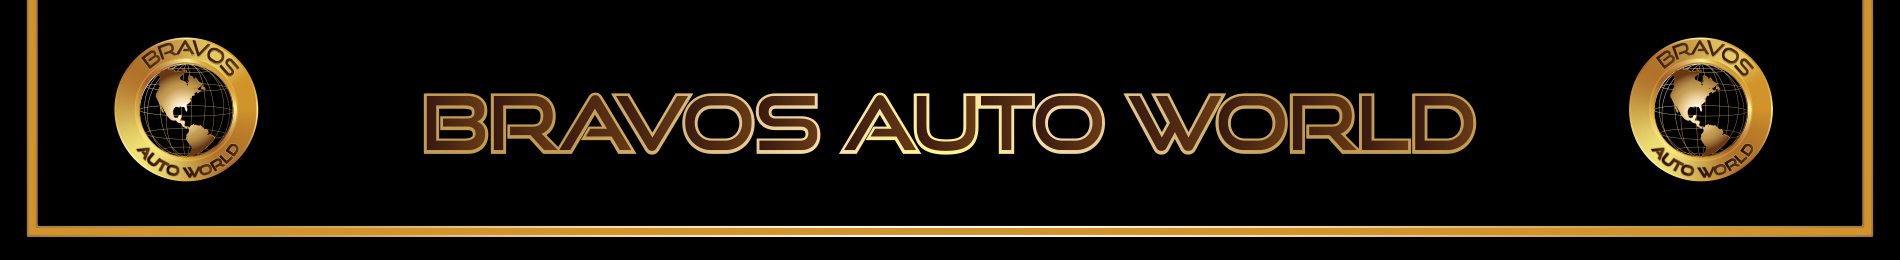 BRAVO'S AUTO WORLD  Logo